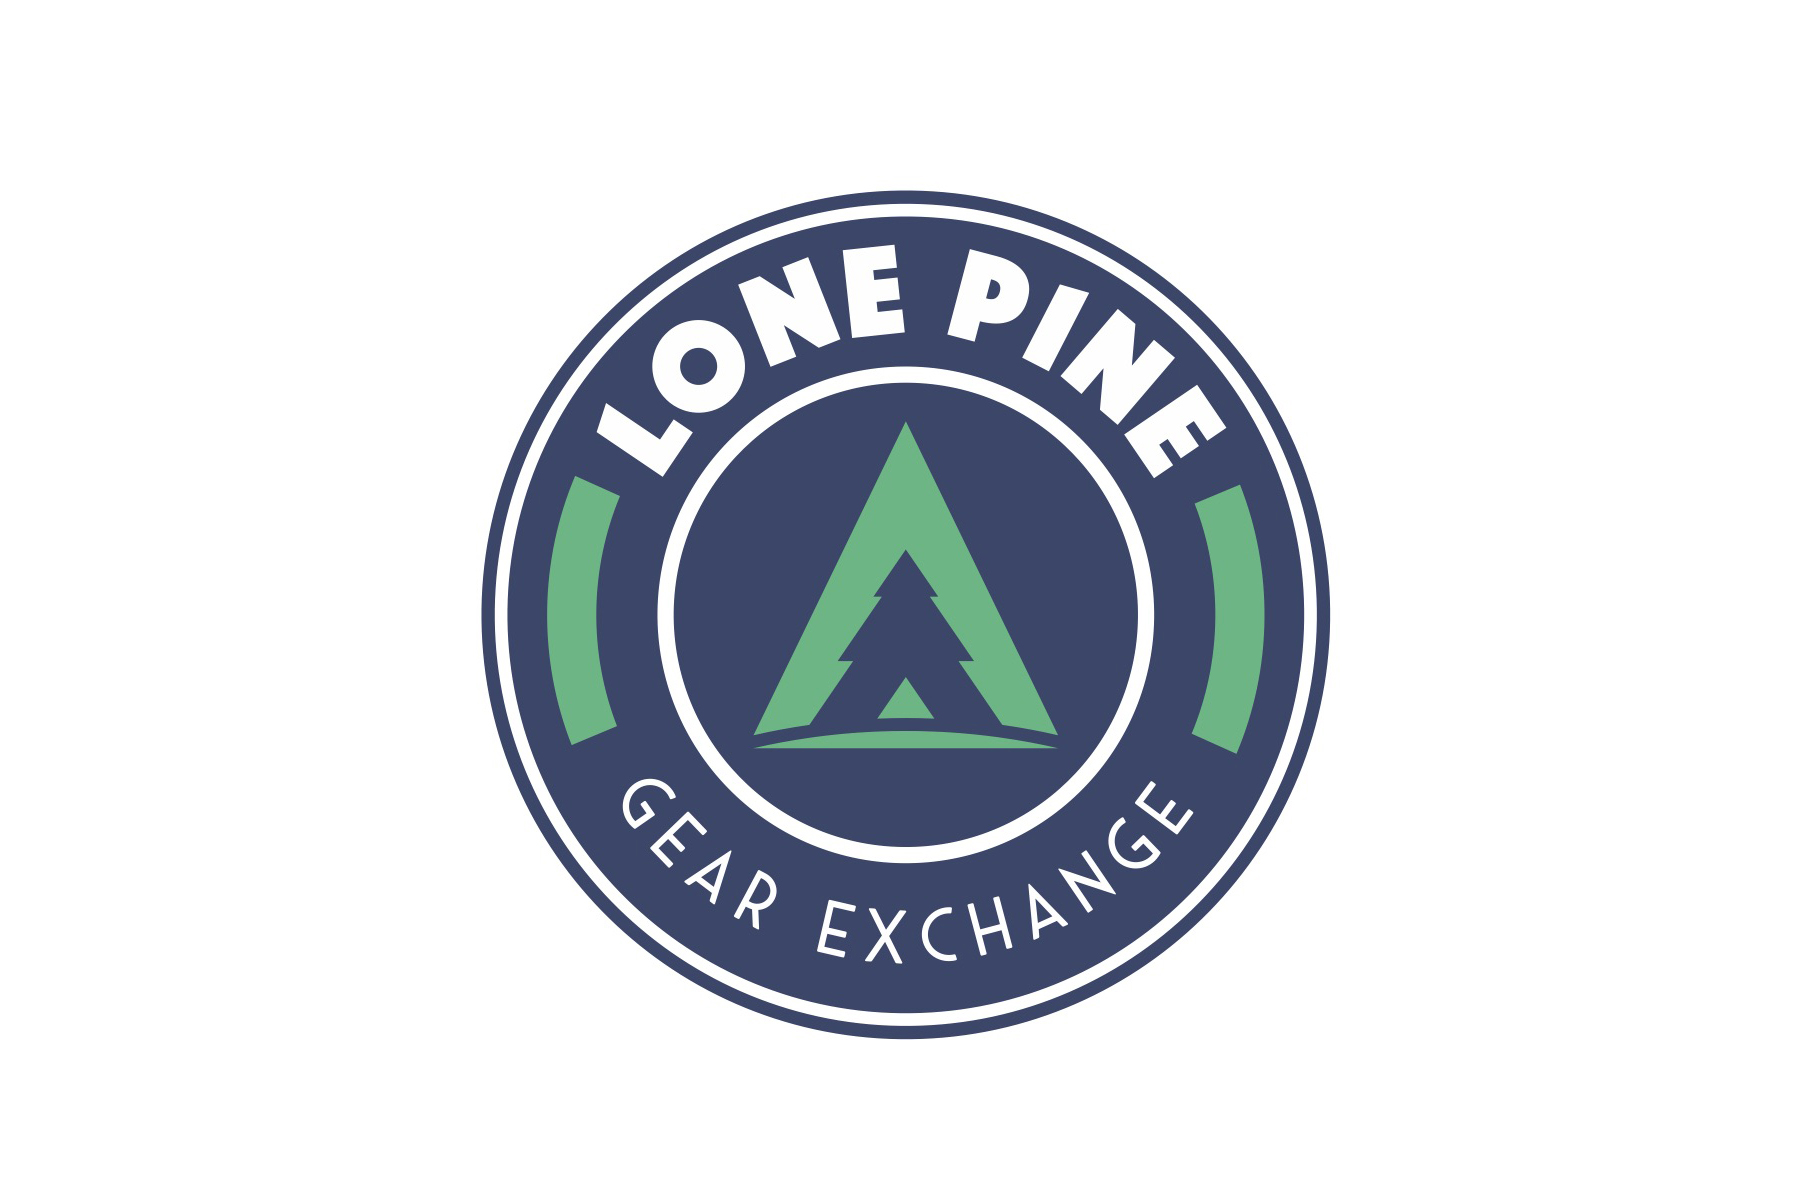 Lone Pine Gear Exchange